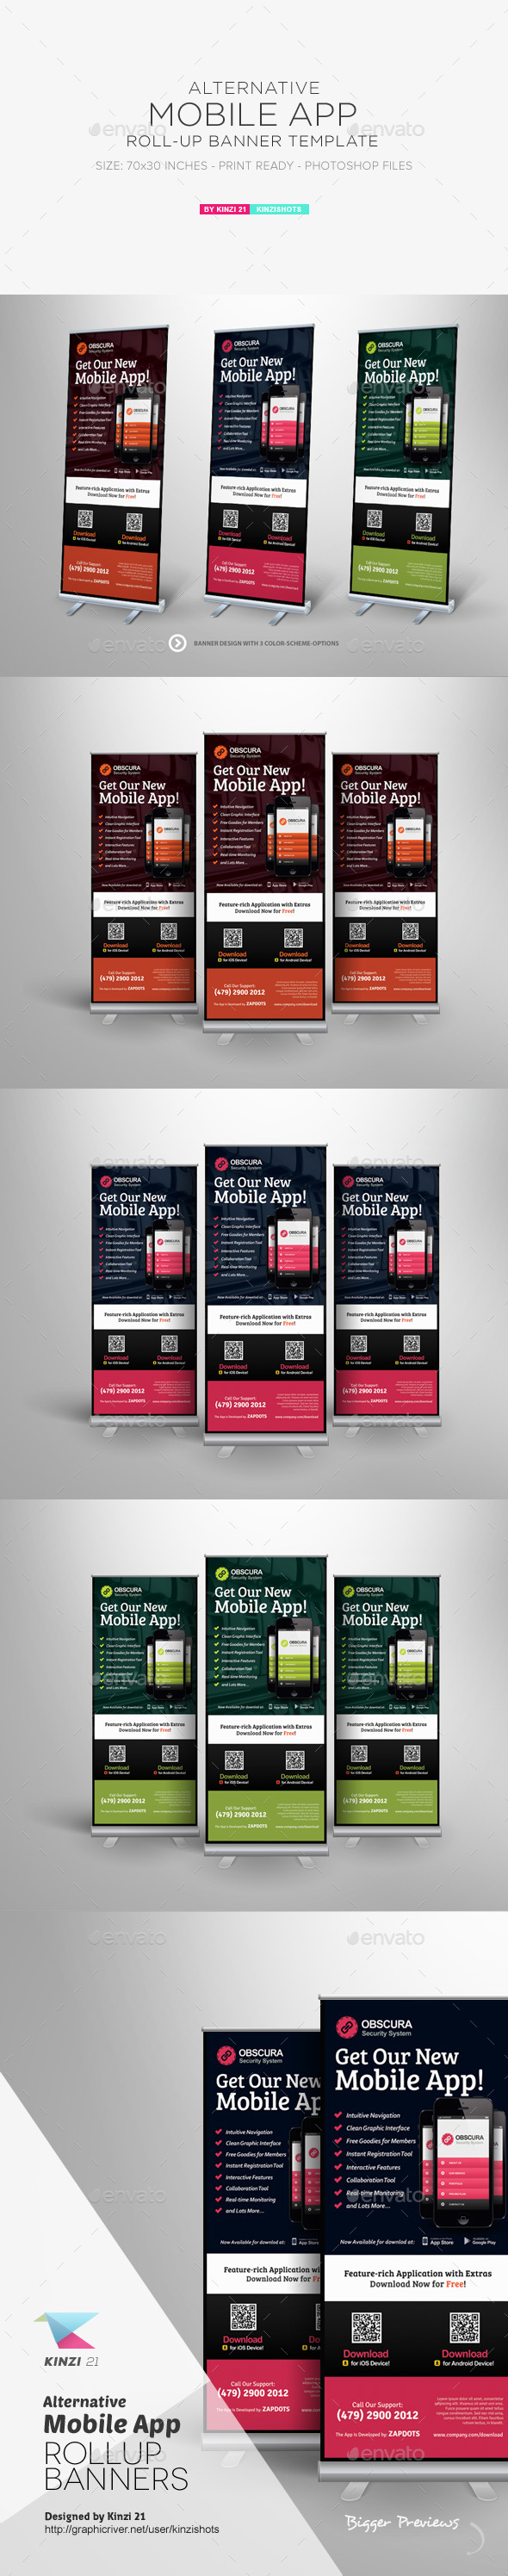 Alternative Mobile App Roll-up Banner Template